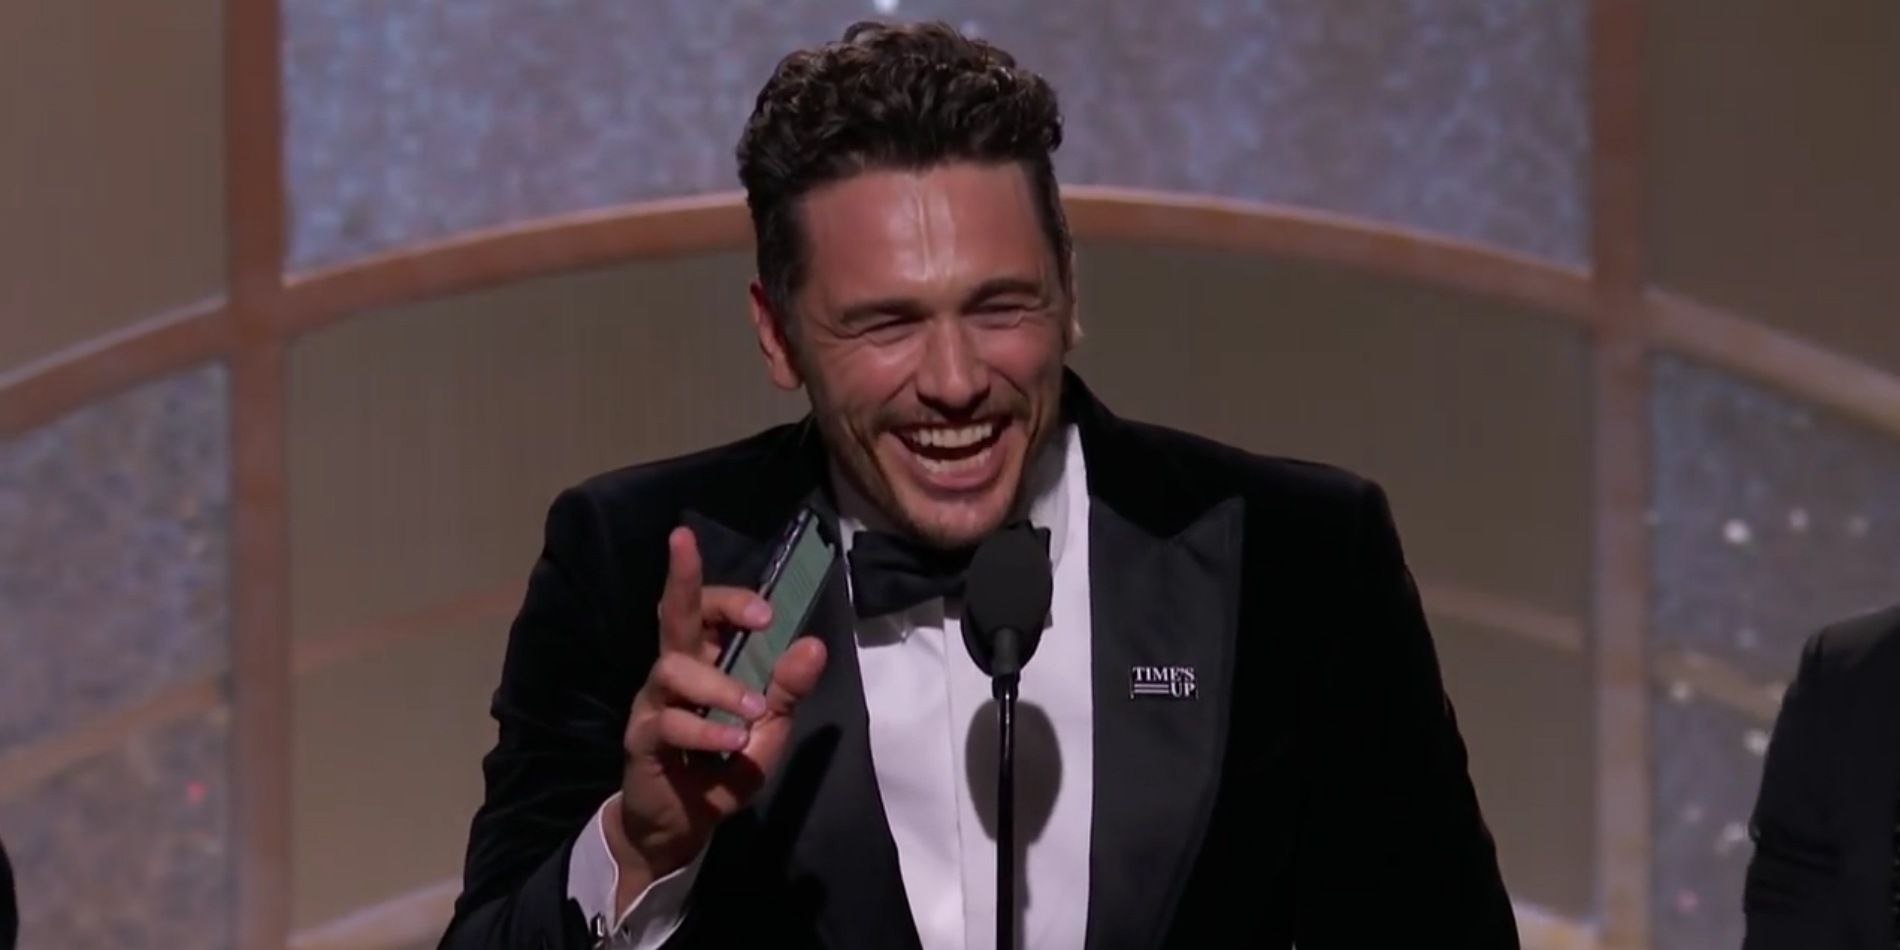 All Male Speeches At Globes Had One Disturbing Thing In Common 7cb9e7035bbde7d8